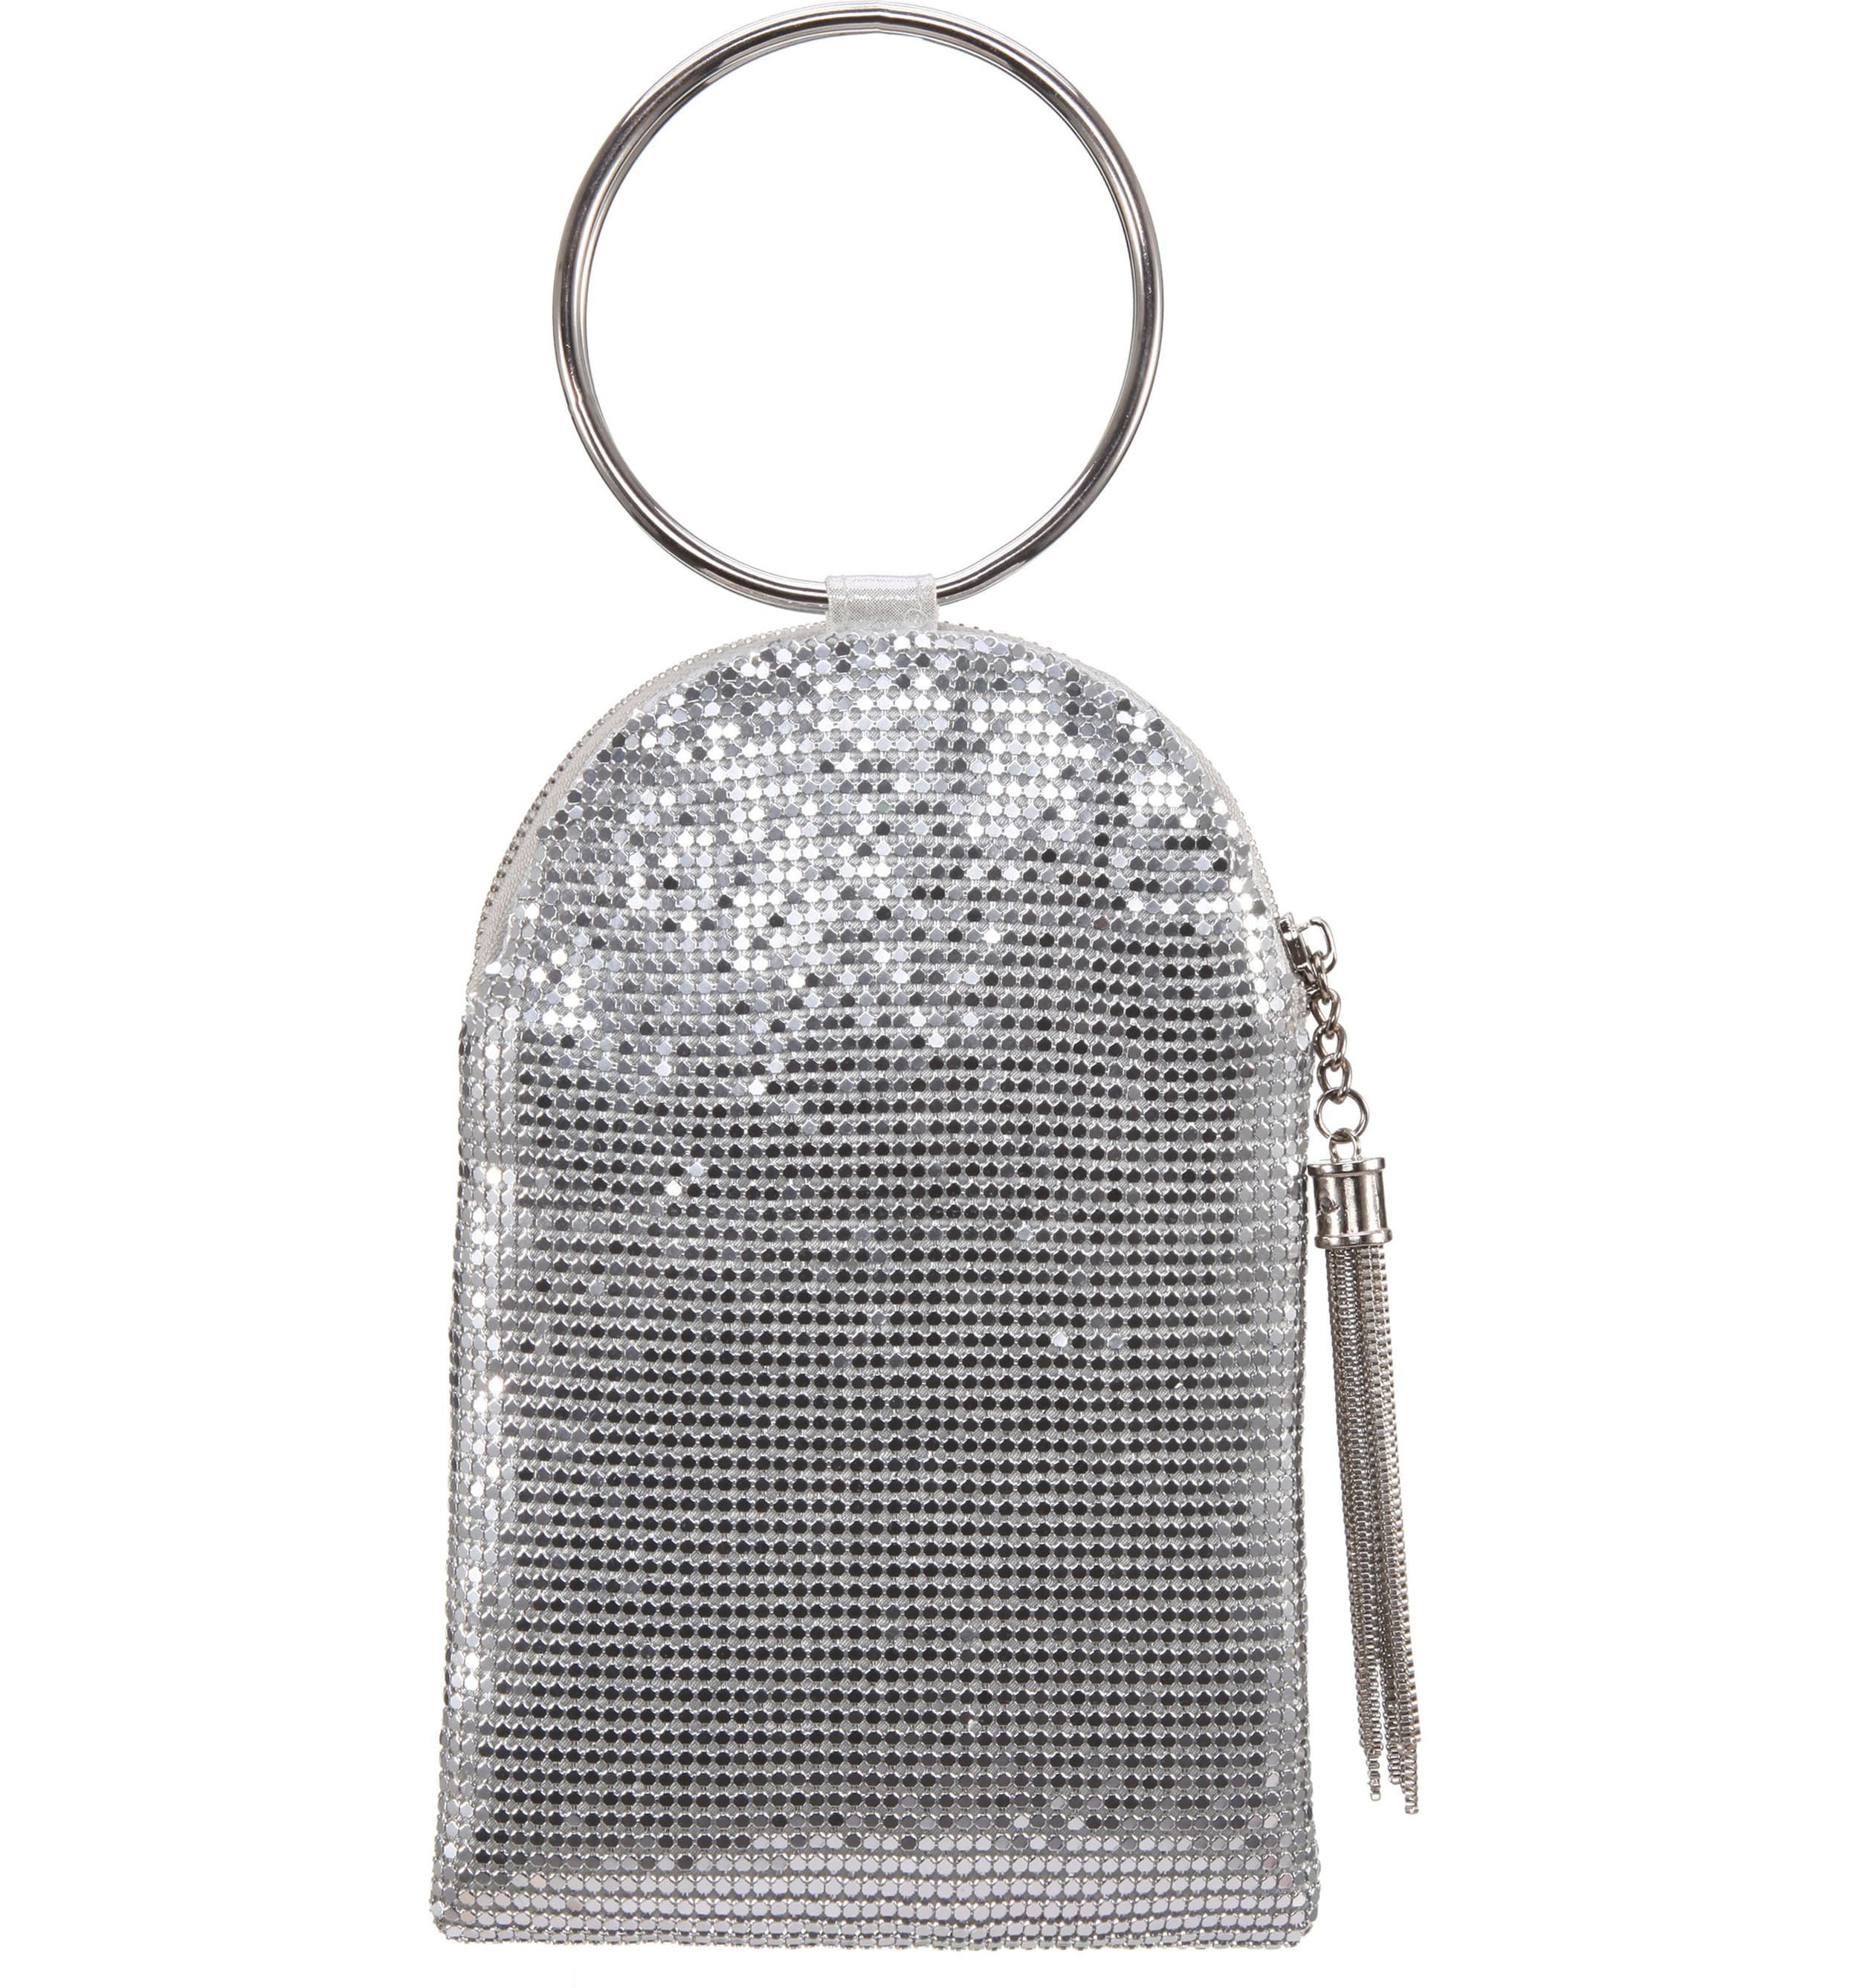 "<p>Circle handles are shaping up to be the on-trend look this season, and this sparkling bag lets you show it off in a big way. $58</p><p><a  href=""https://shop.nordstrom.com/s/nina-metallic-mesh-handbag/4991078/full?origin=category-personalizedsort&breadcrumb=Home%2FWomen%2FShop%20by%20Occasion%2FNight%20Out&color=rose%20gold"" target=""_blank"" title=""https://shop.nordstrom.com/s/nina-metallic-mesh-handbag/4991078/full?origin=category-personalizedsort&breadcrumb=Home%2FWomen%2FShop%20by%20Occasion%2FNight%20Out&color=rose%20gold"">Shop it{&nbsp;}</a></p><p>(Image: Nordstrom){&nbsp;}</p>"